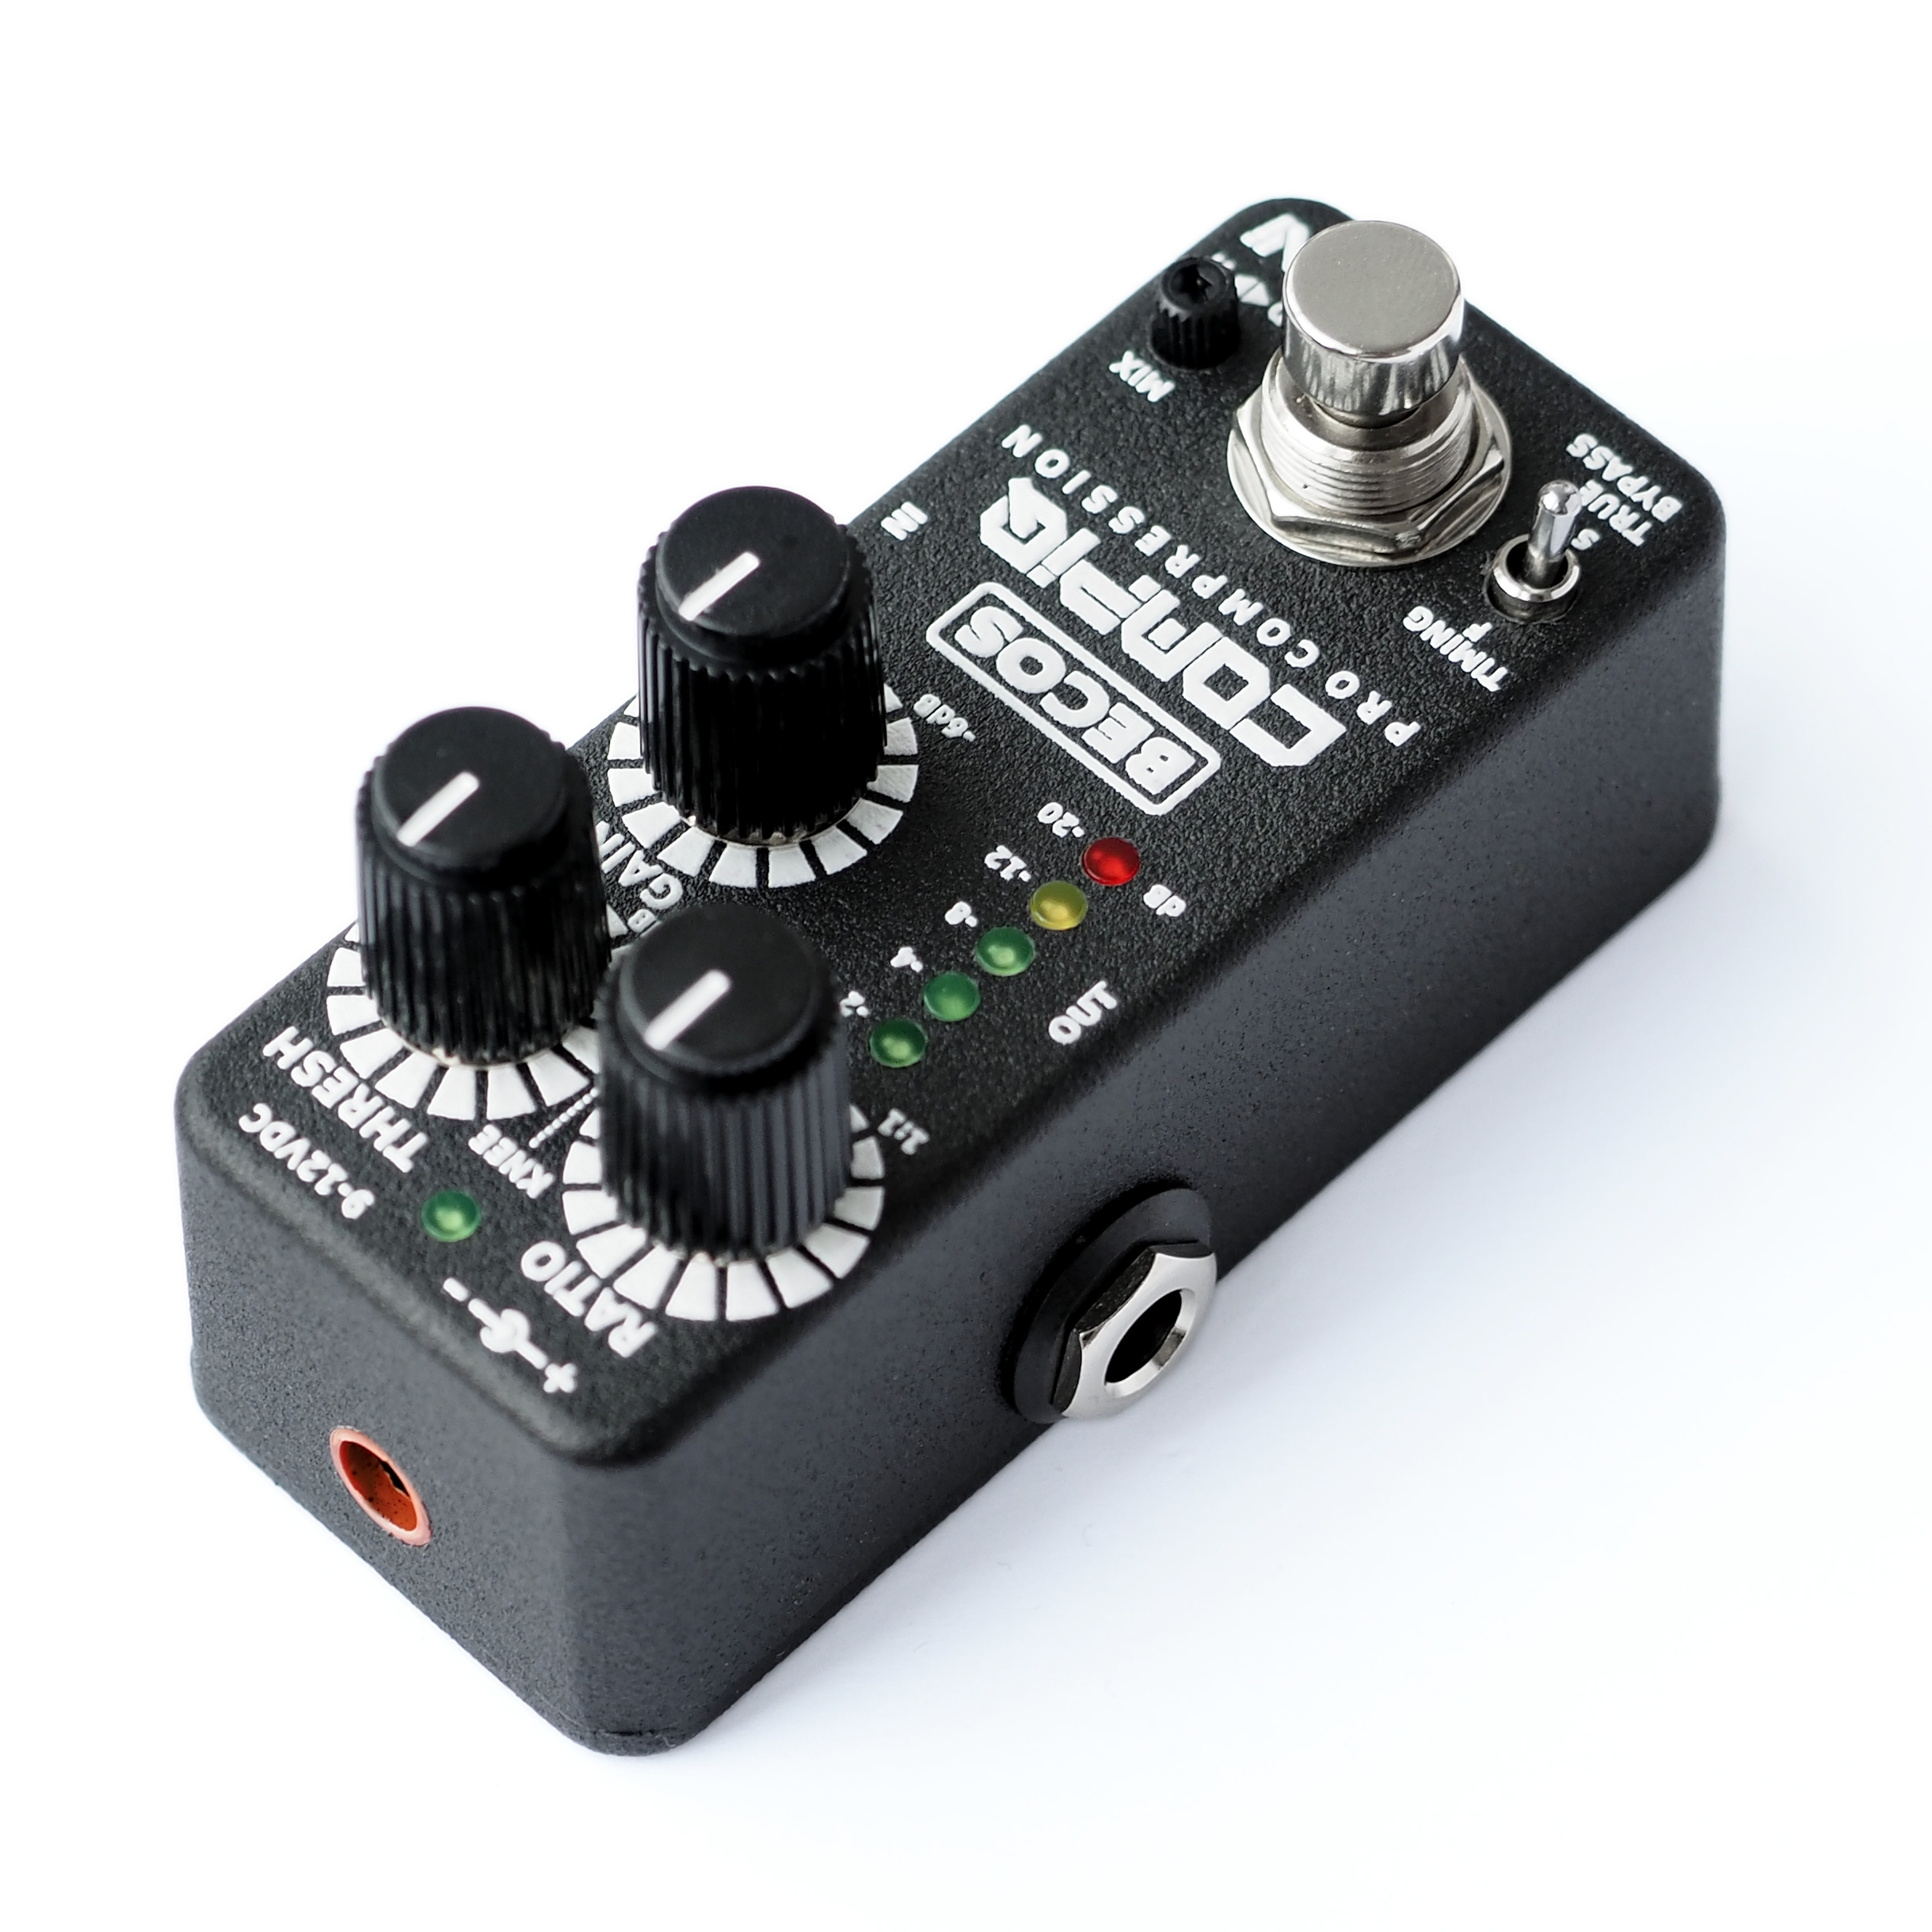 compiq mini pro compressor pedal for guitar bass becosfx. Black Bedroom Furniture Sets. Home Design Ideas